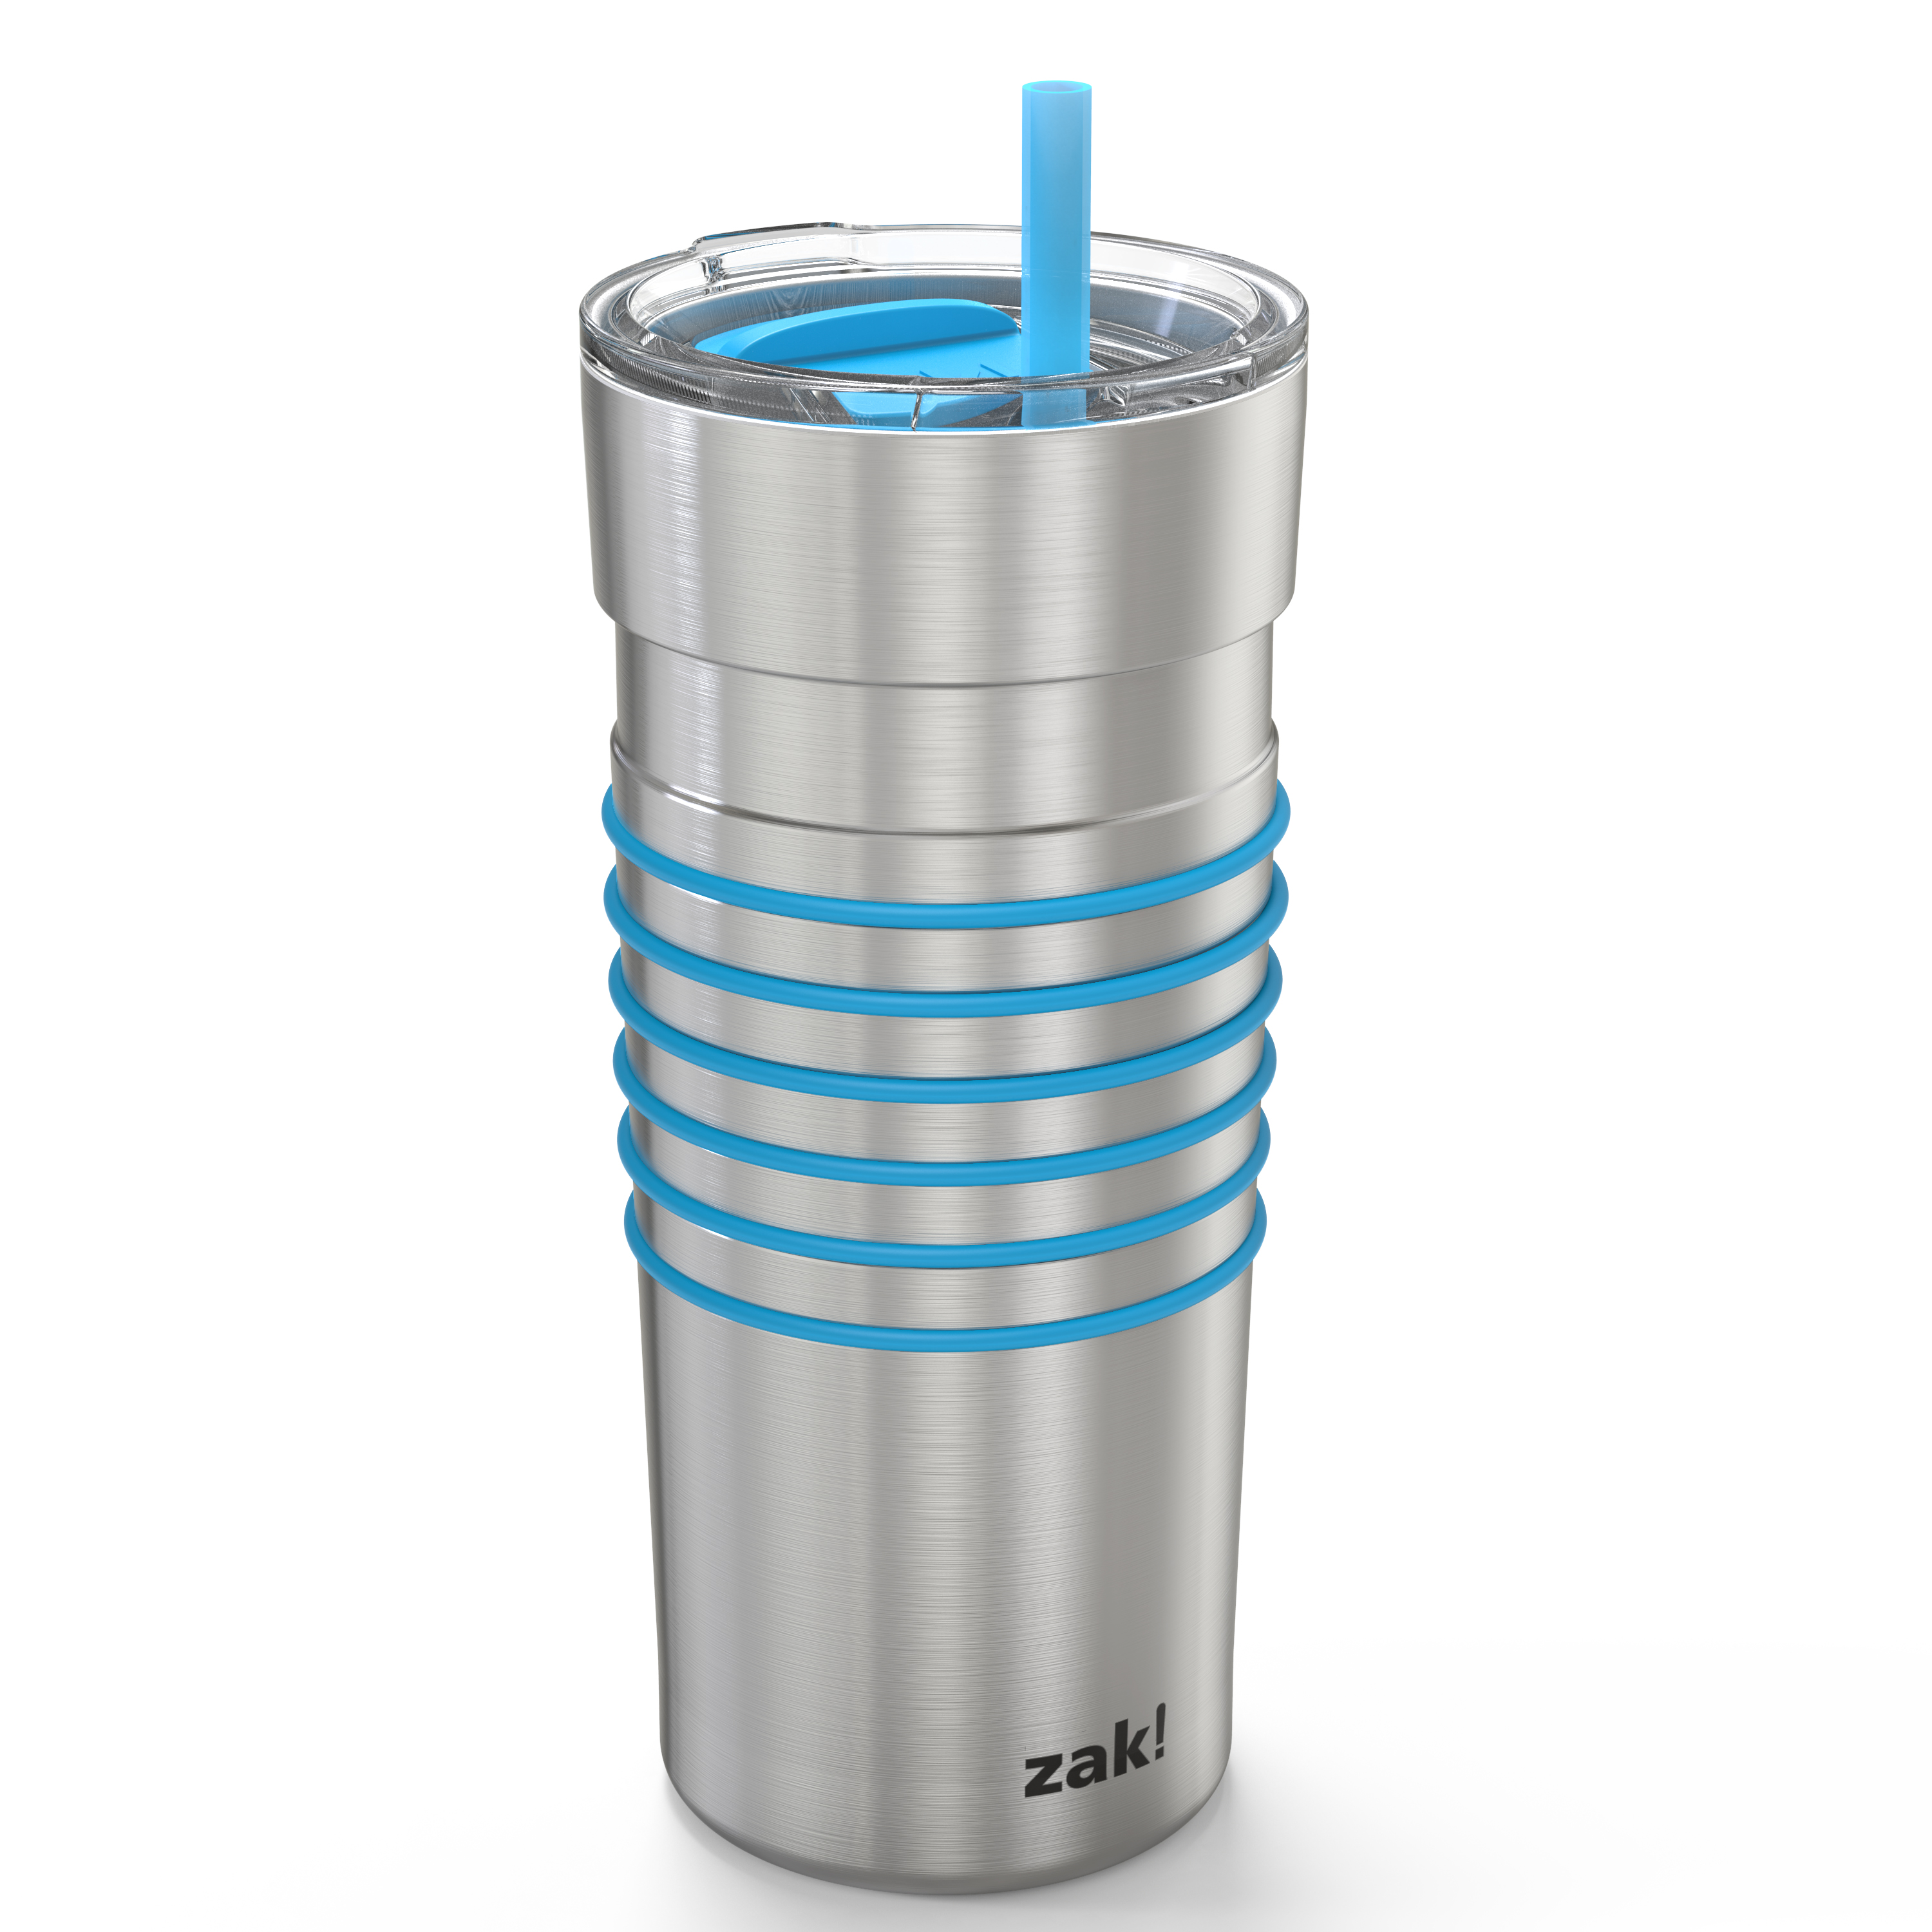 HydraTrak 20 ounce Vacuum Insulated Stainless Steel Tumbler, Stainless Steel with Blue Rings slideshow image 2